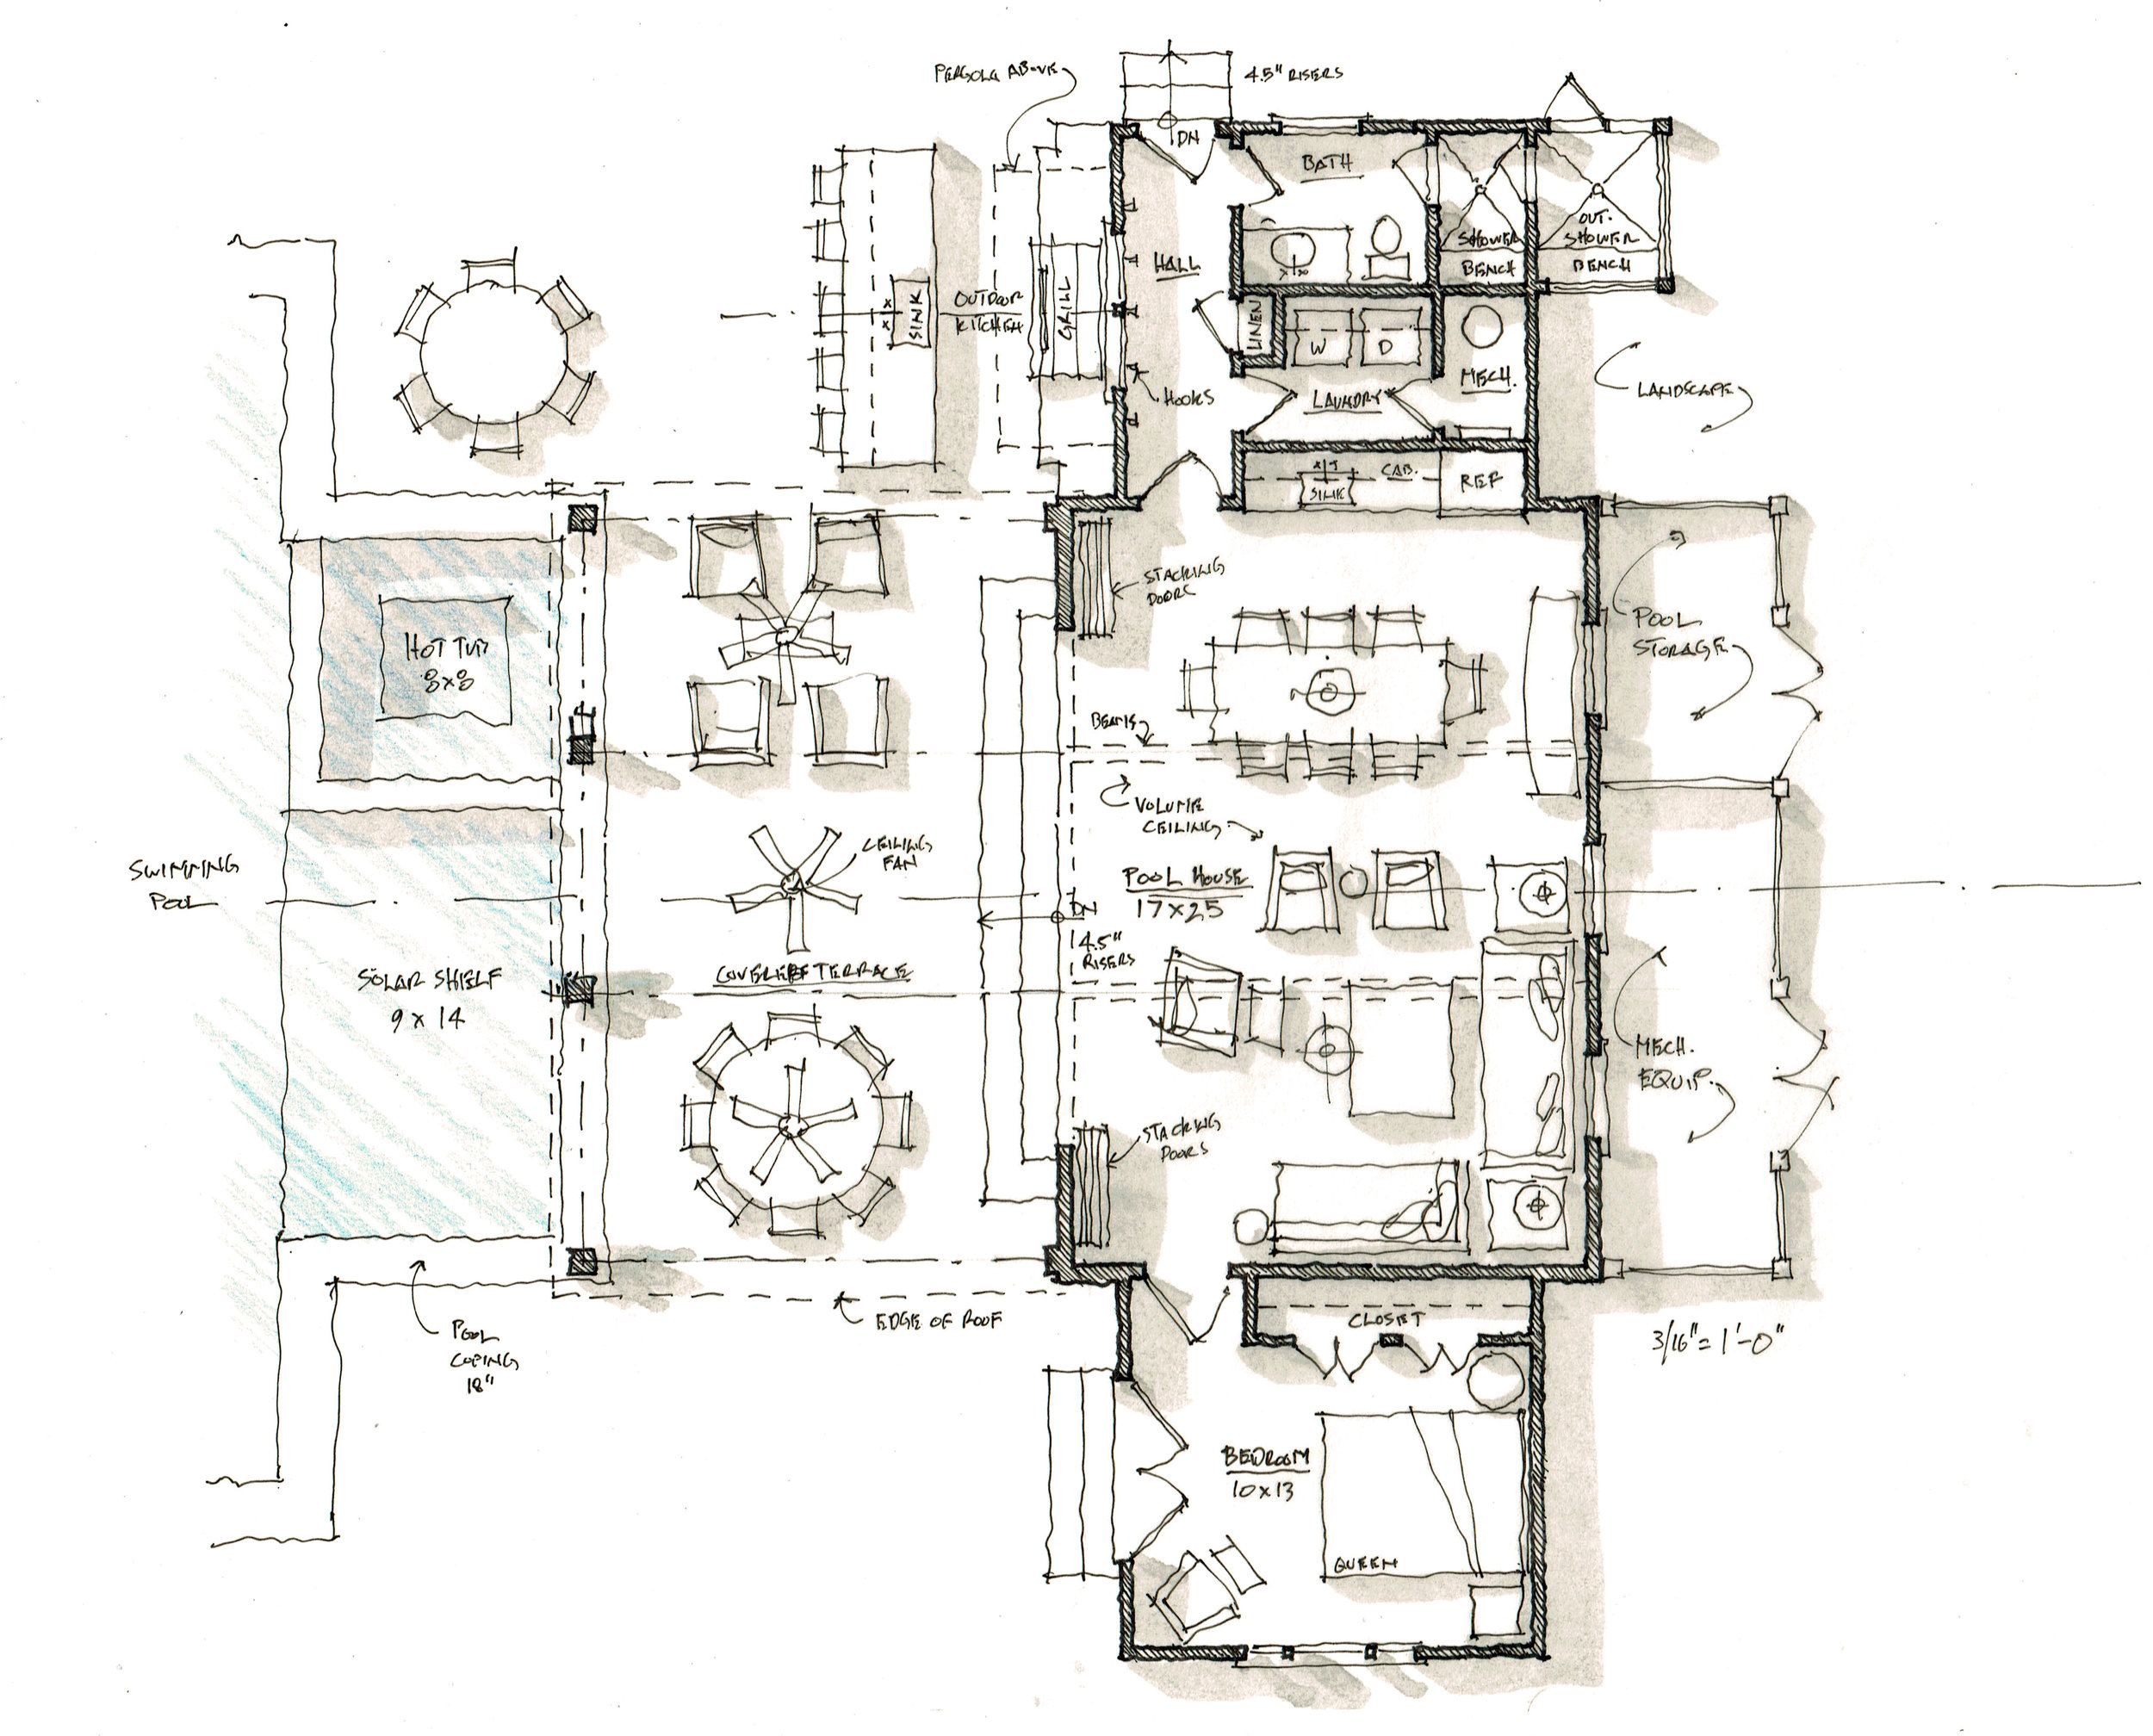 2015.10.22 Pool House Plan.jpg